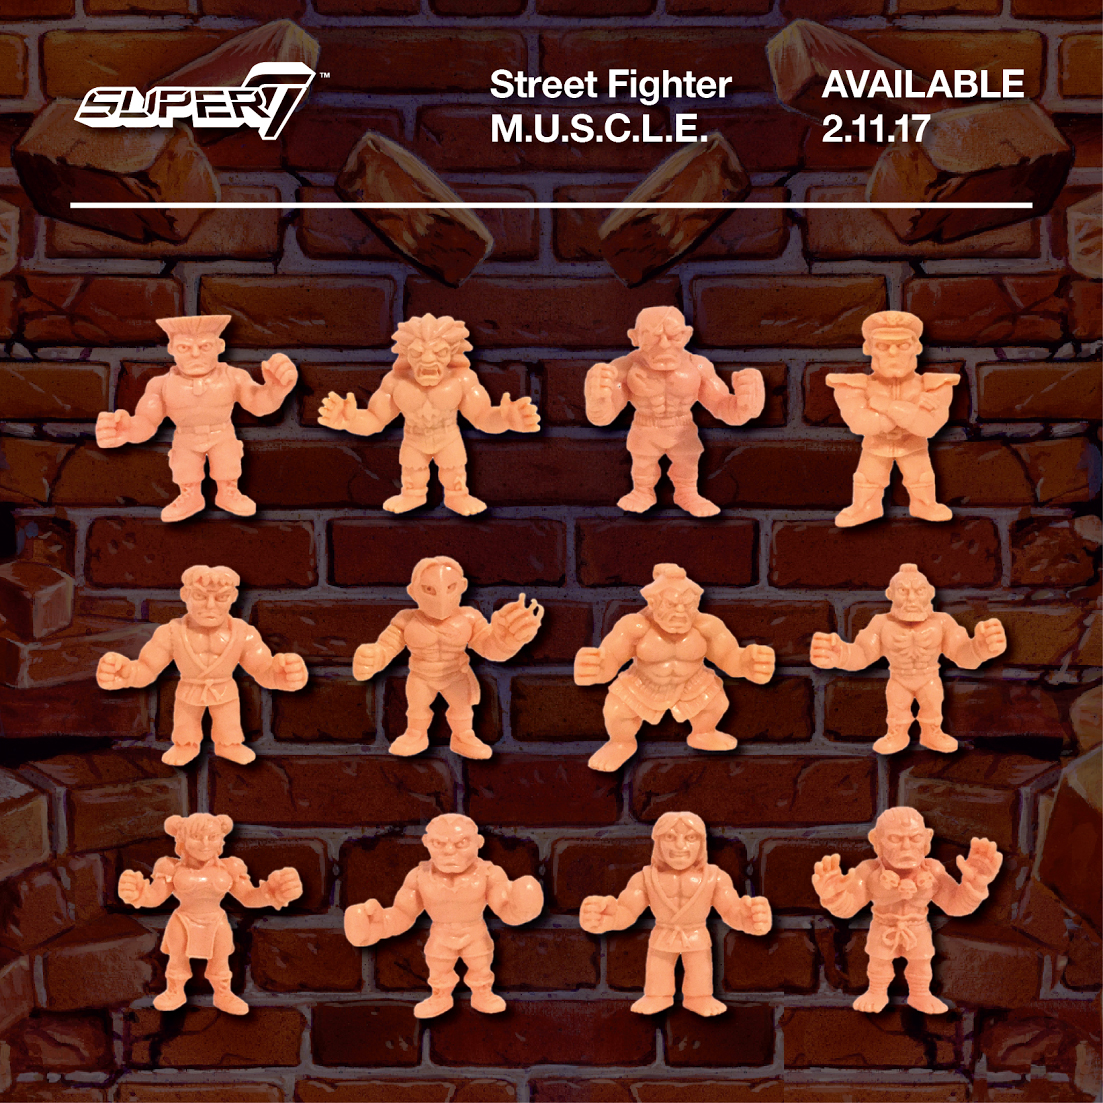 street-fighter-muscle-super7-figures